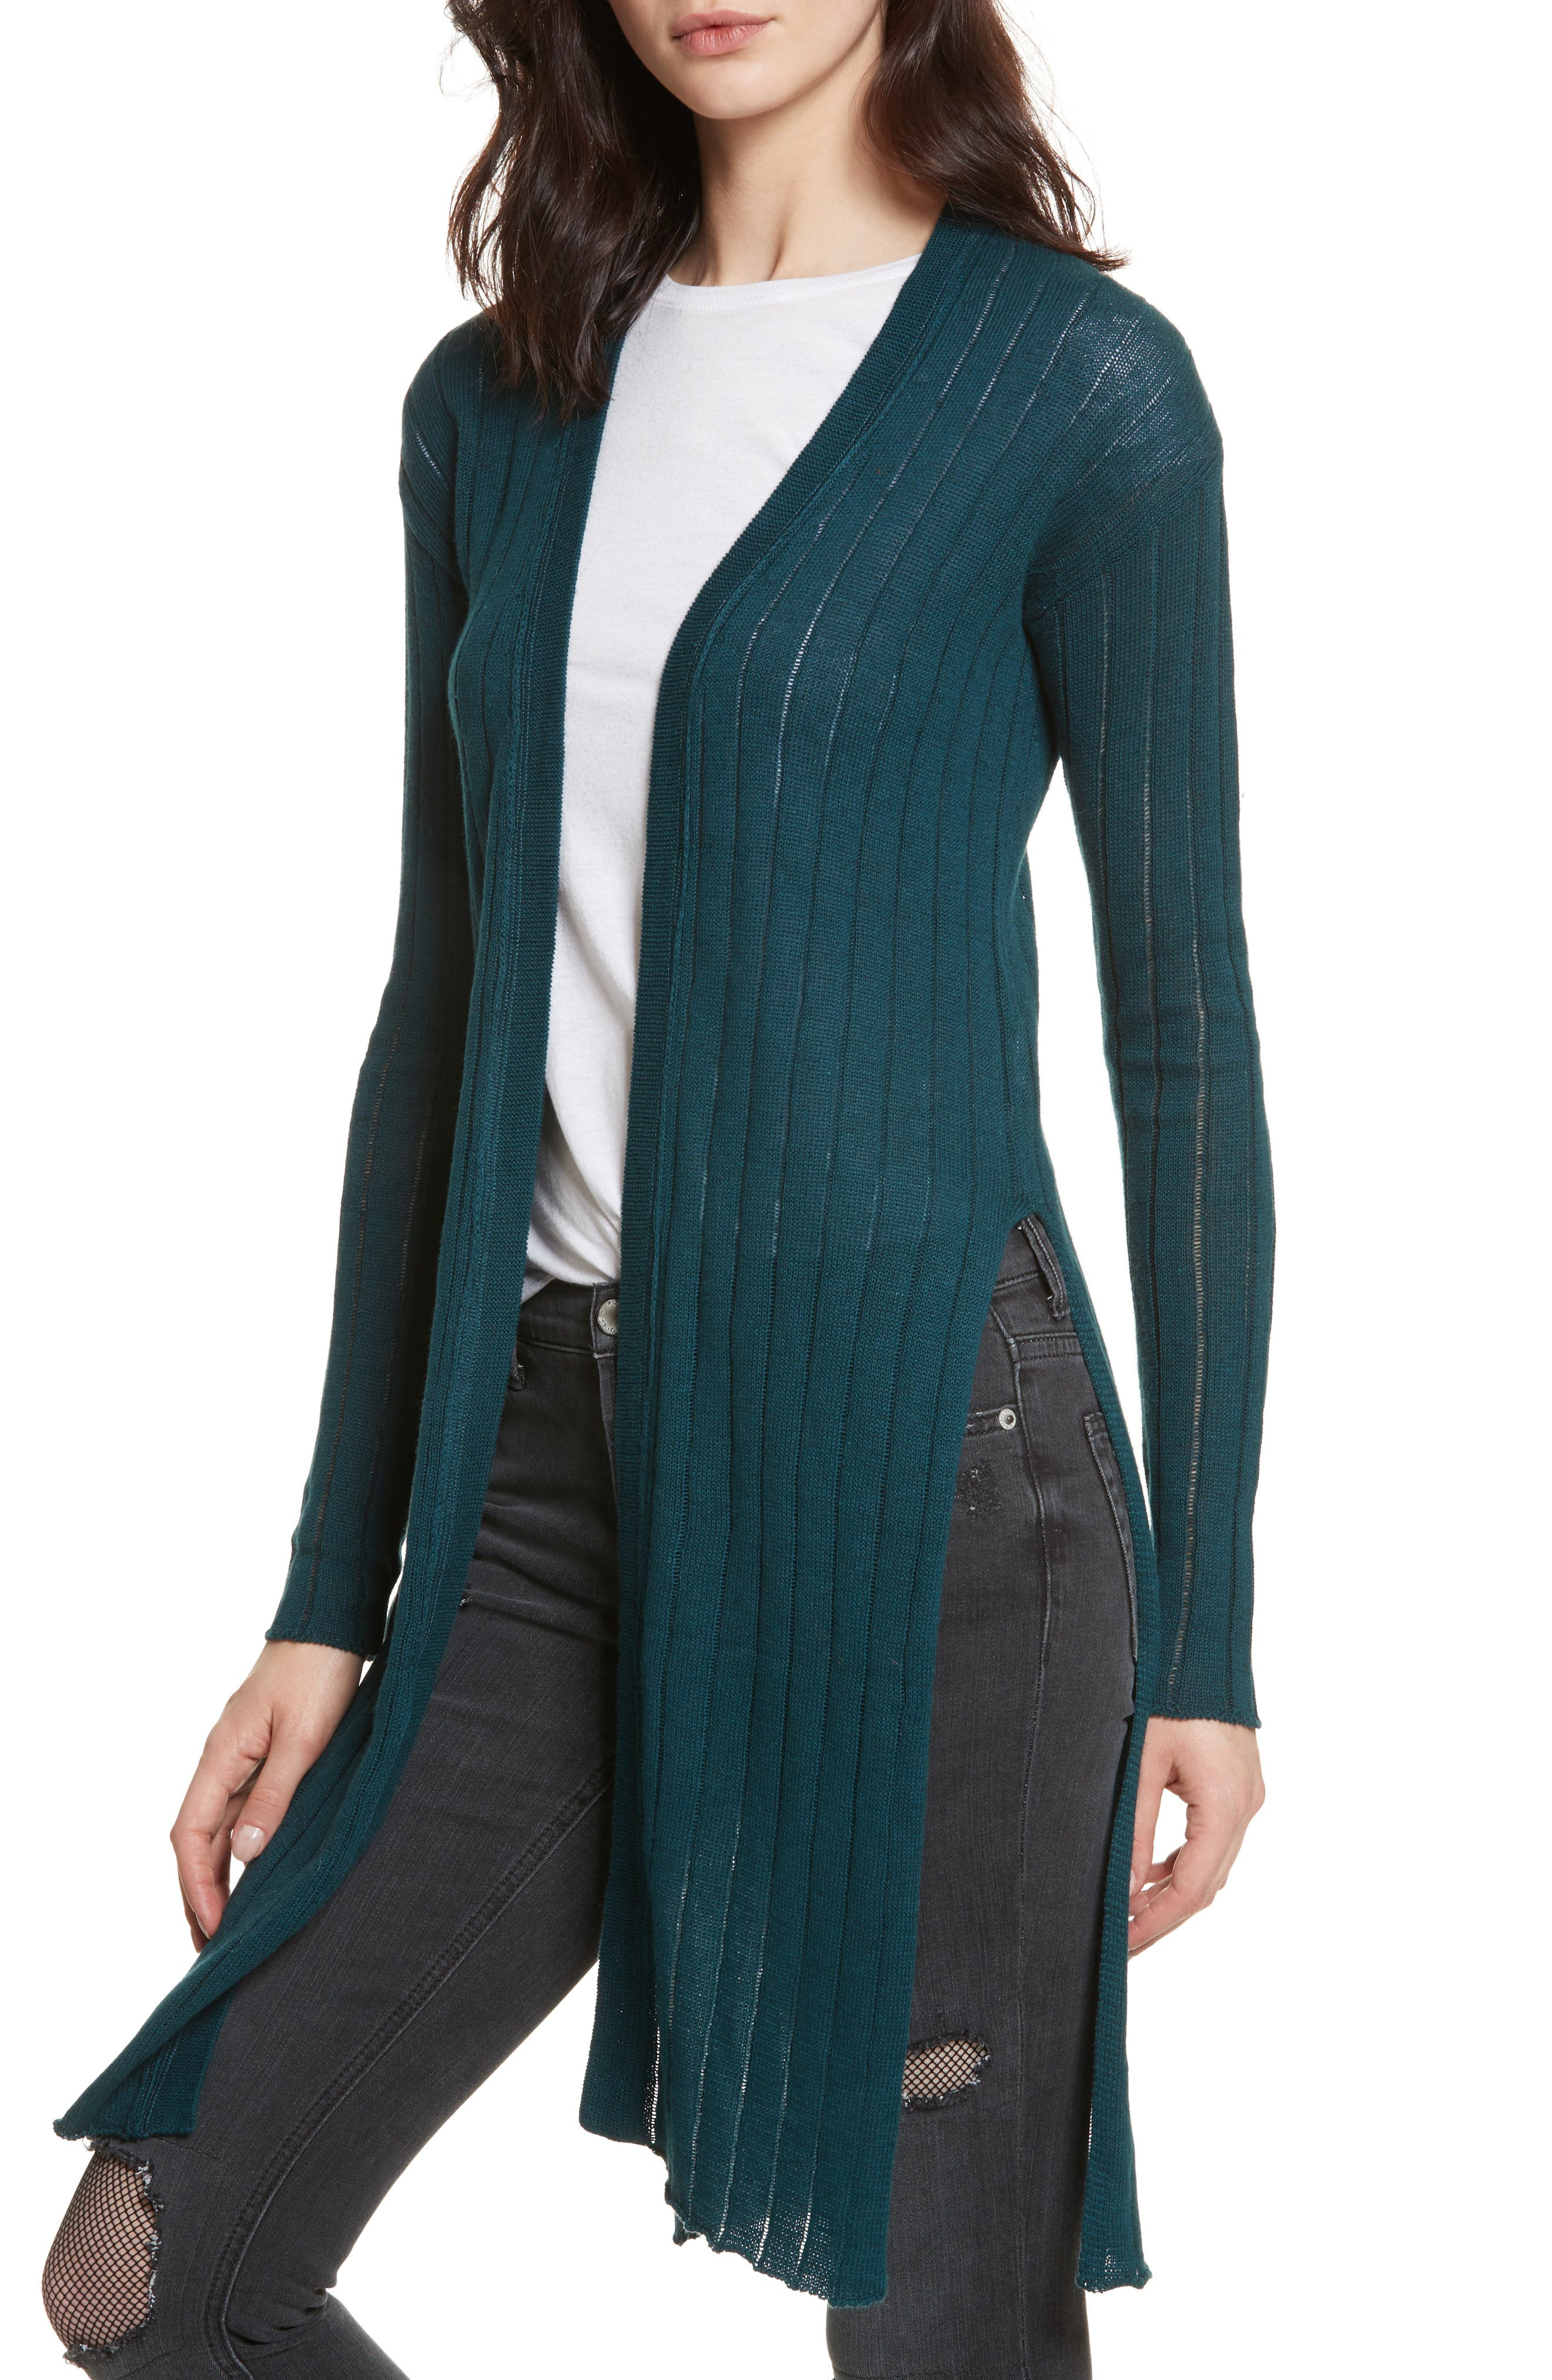 FREE PEOPLE,                             Ribby Long Cardigan,                             Alternate thumbnail 4, color,                             440